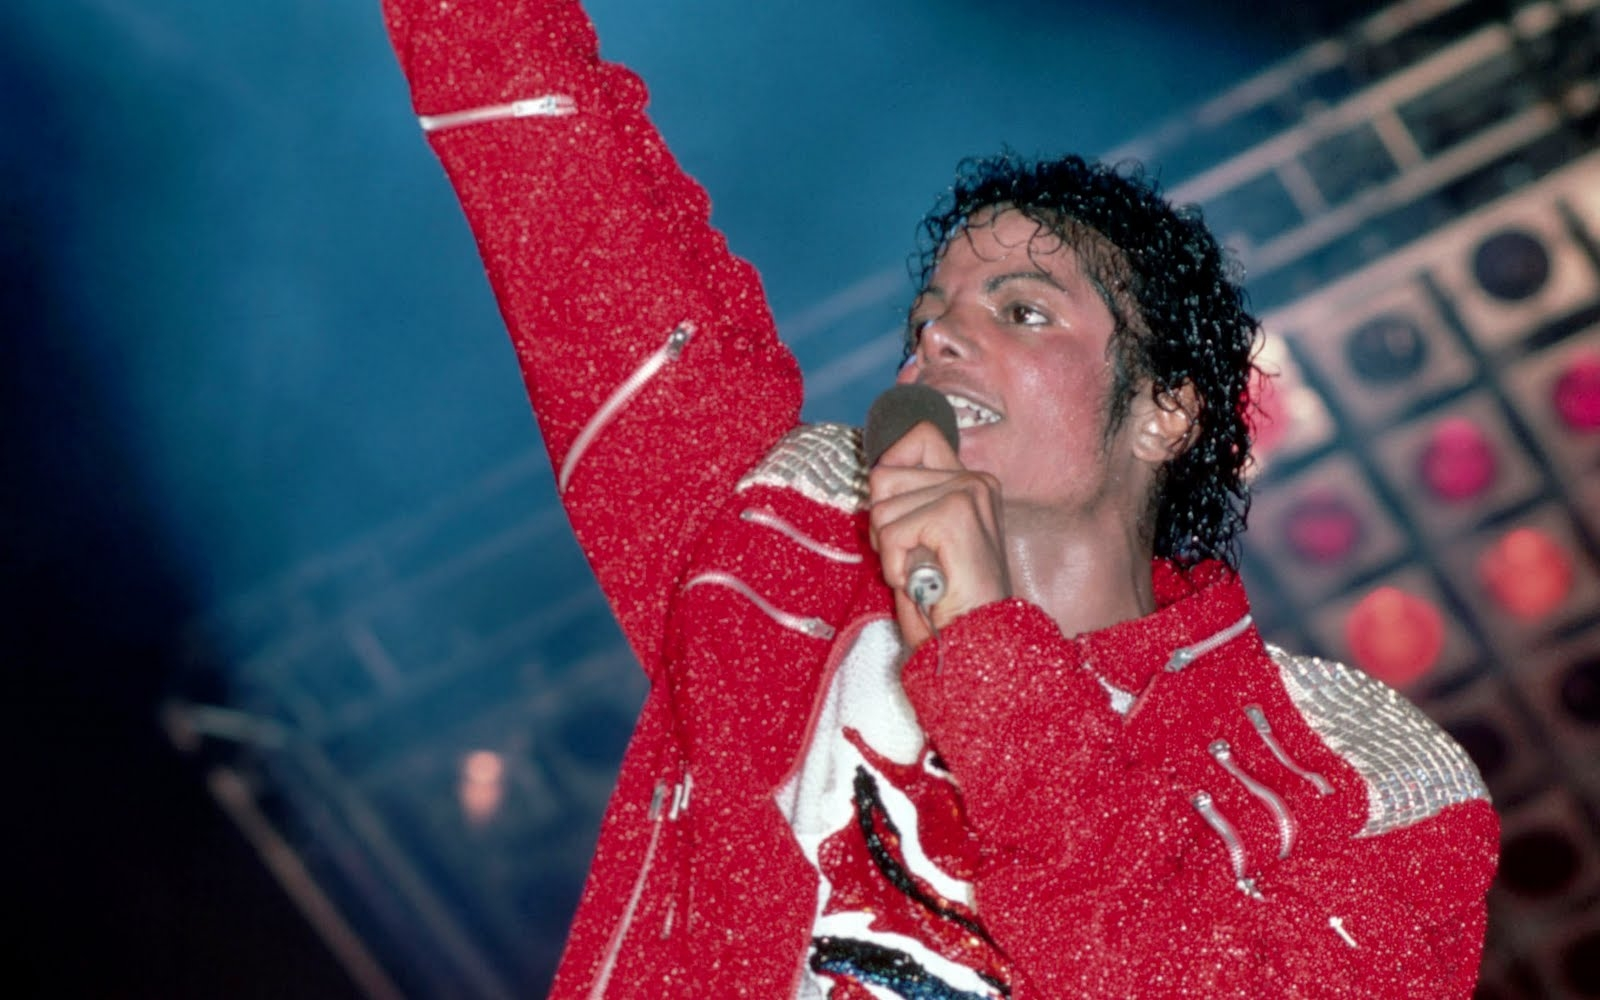 MJ on Victory Tour